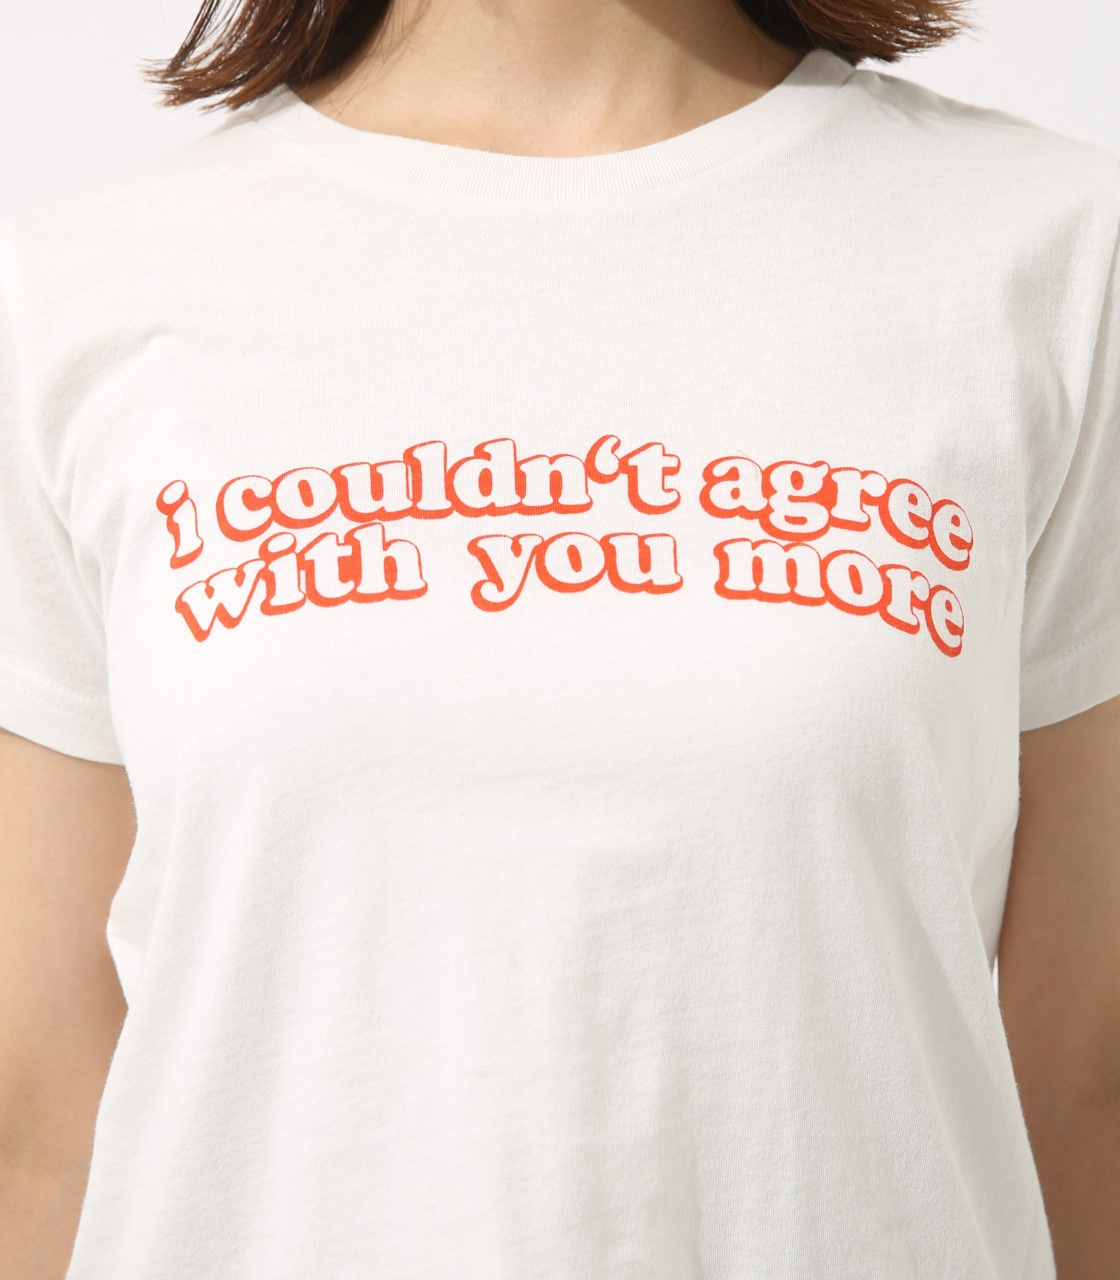 With you more TEE 詳細画像 WHT 8